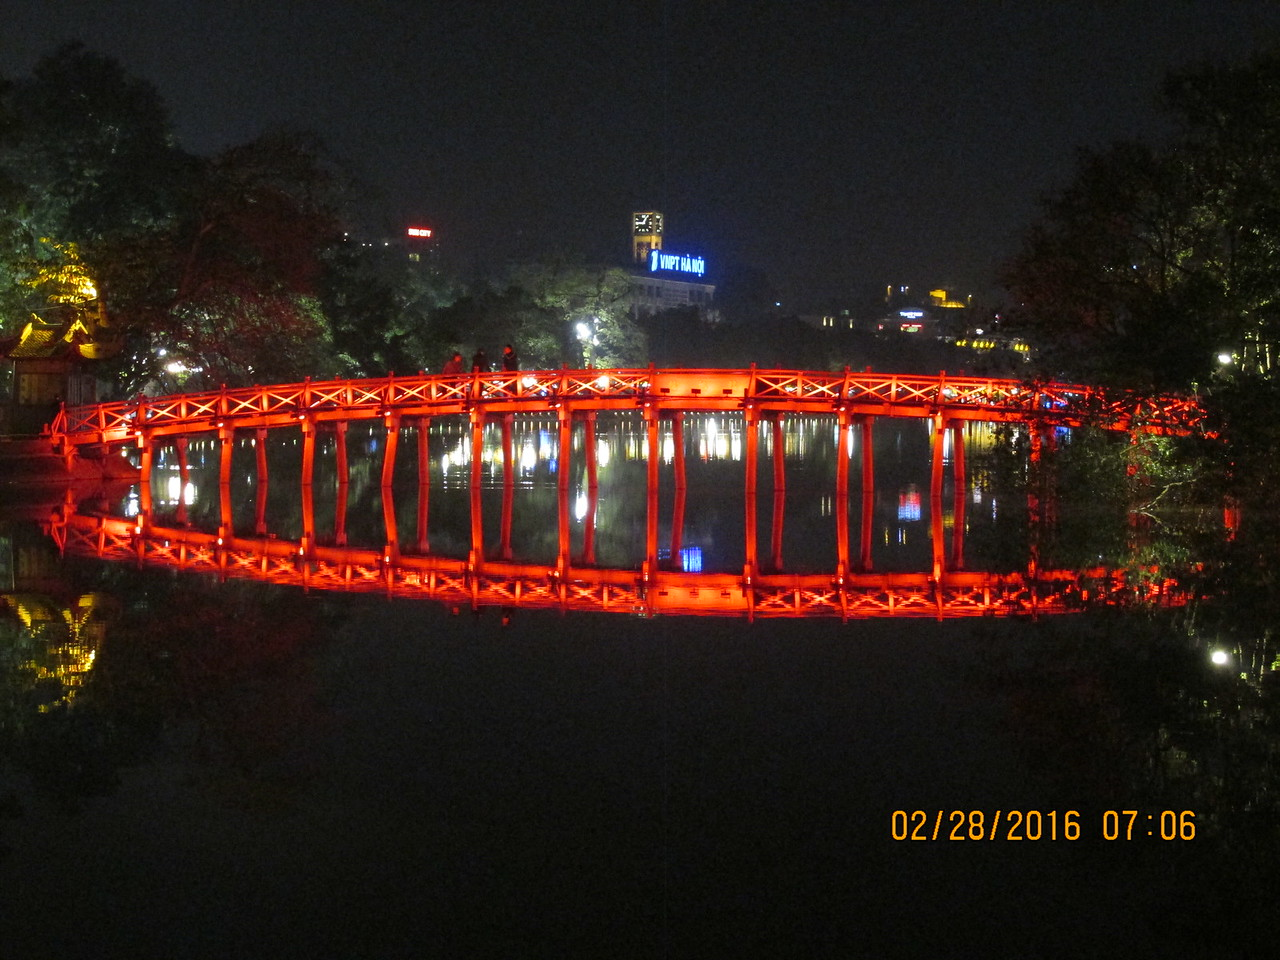 0088 - Night View of Hoan Kiem Lake in the Old Quarter - Hanoi Vietnam - Date Correct but Time on Pic is Wrong